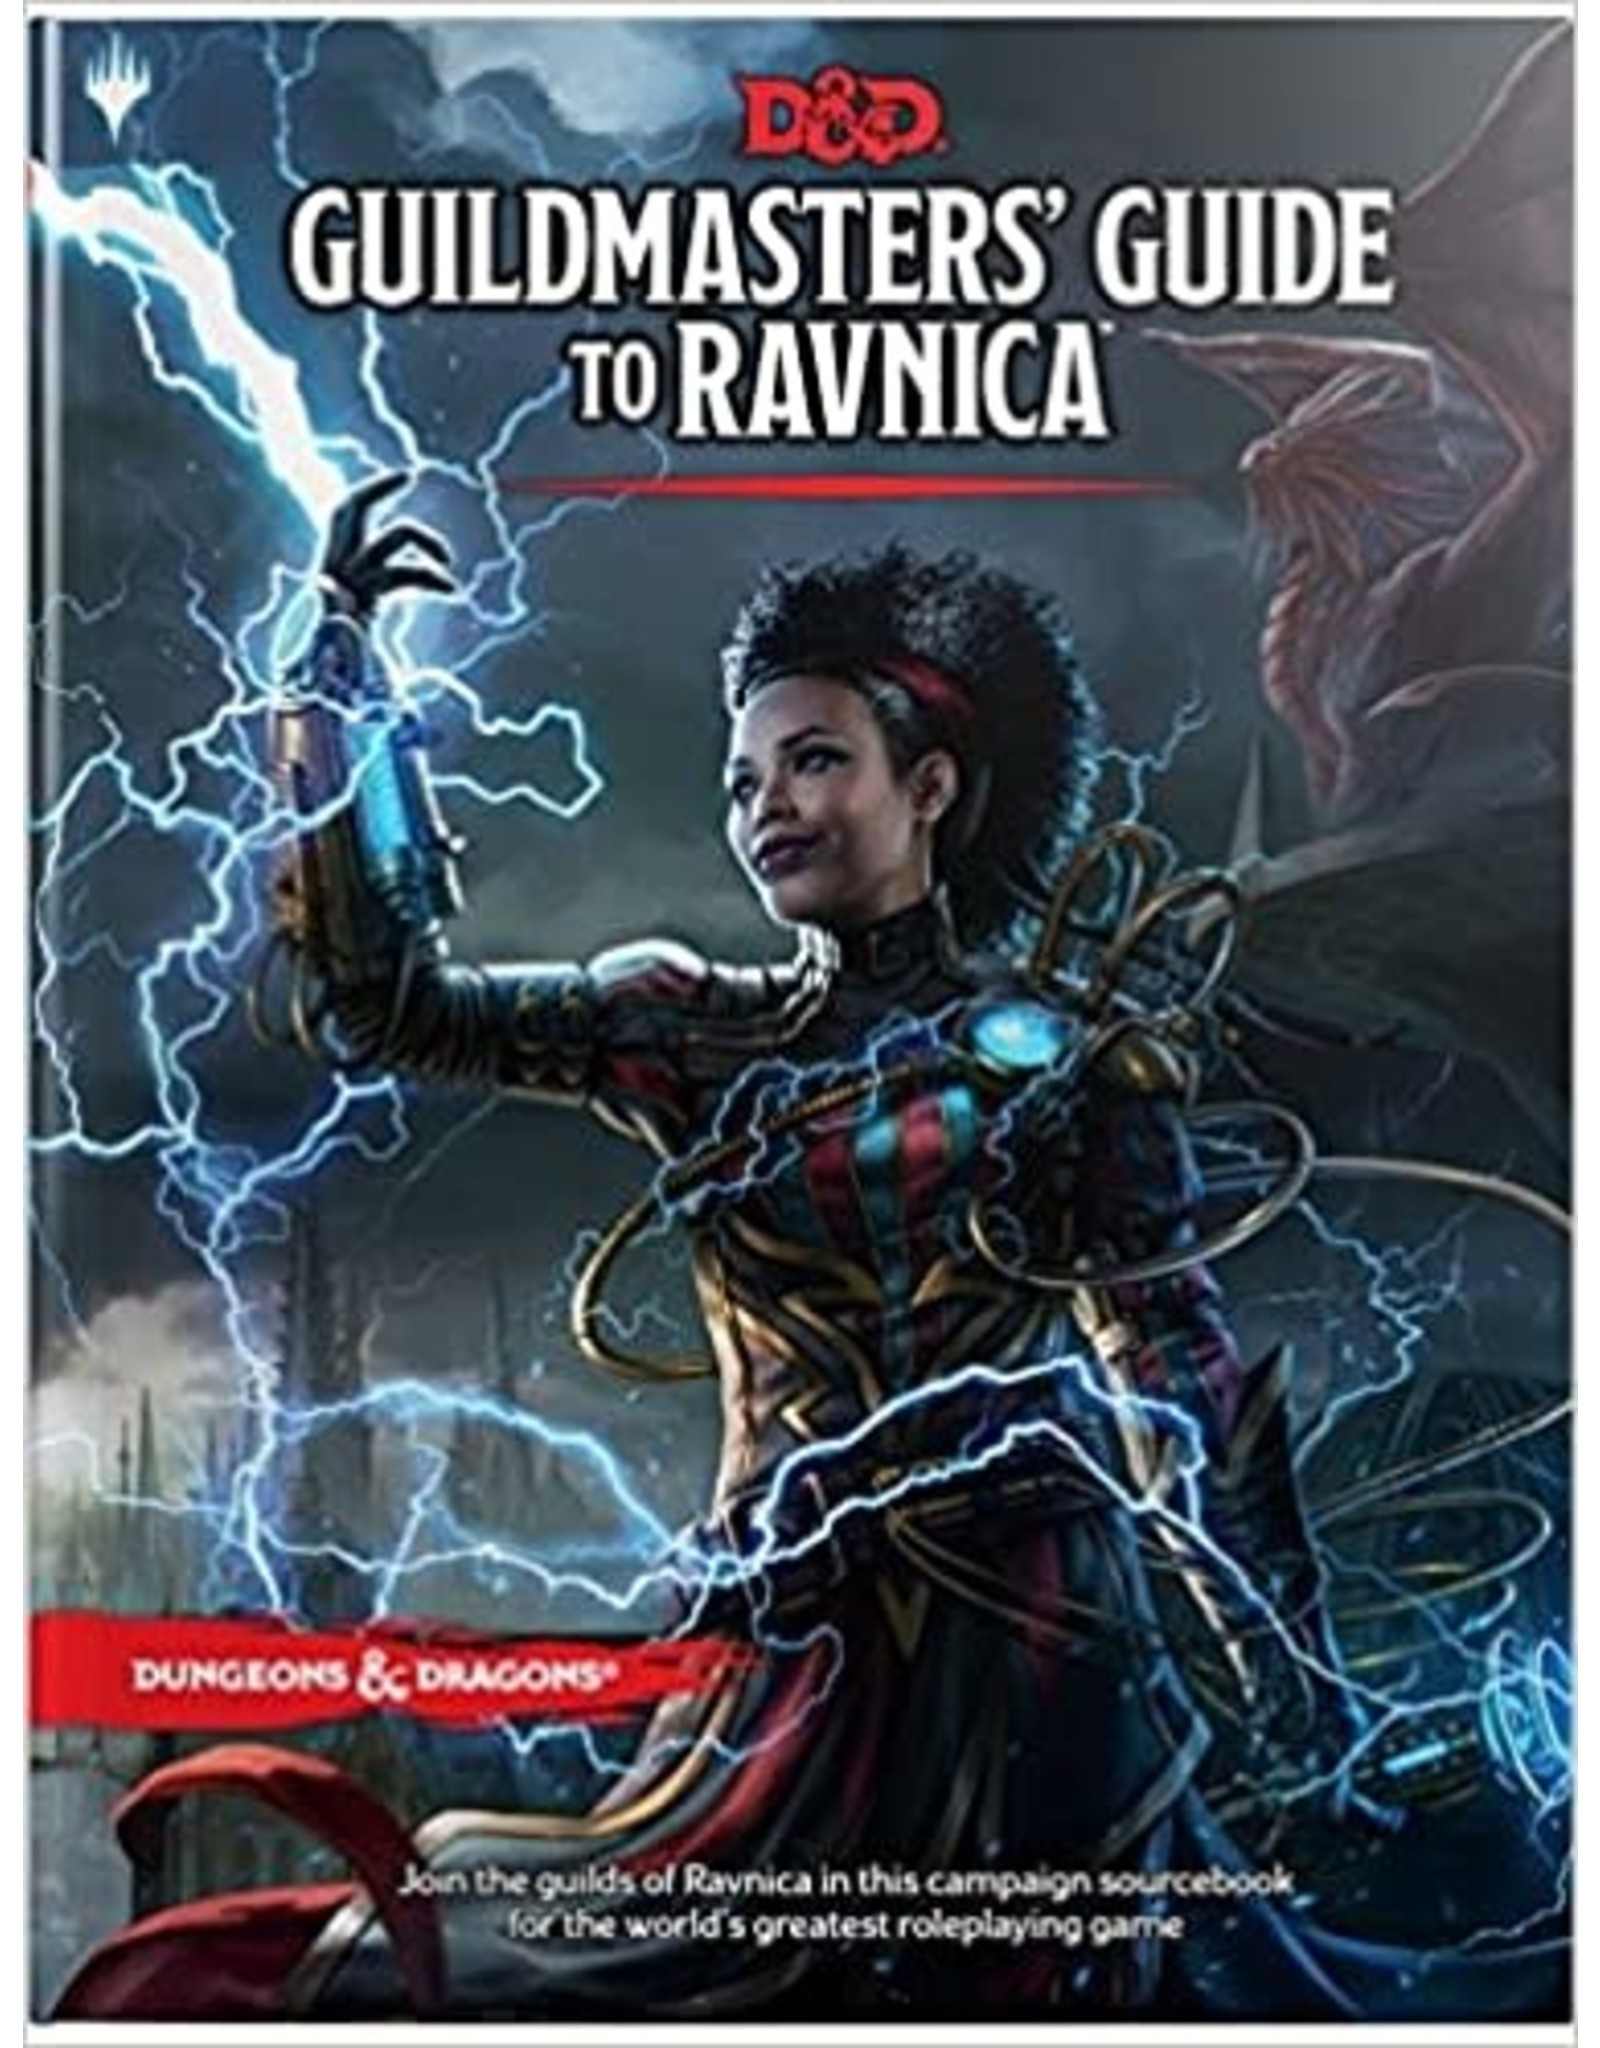 DnD D&D Guildmasters Guide to Ravnica 5th